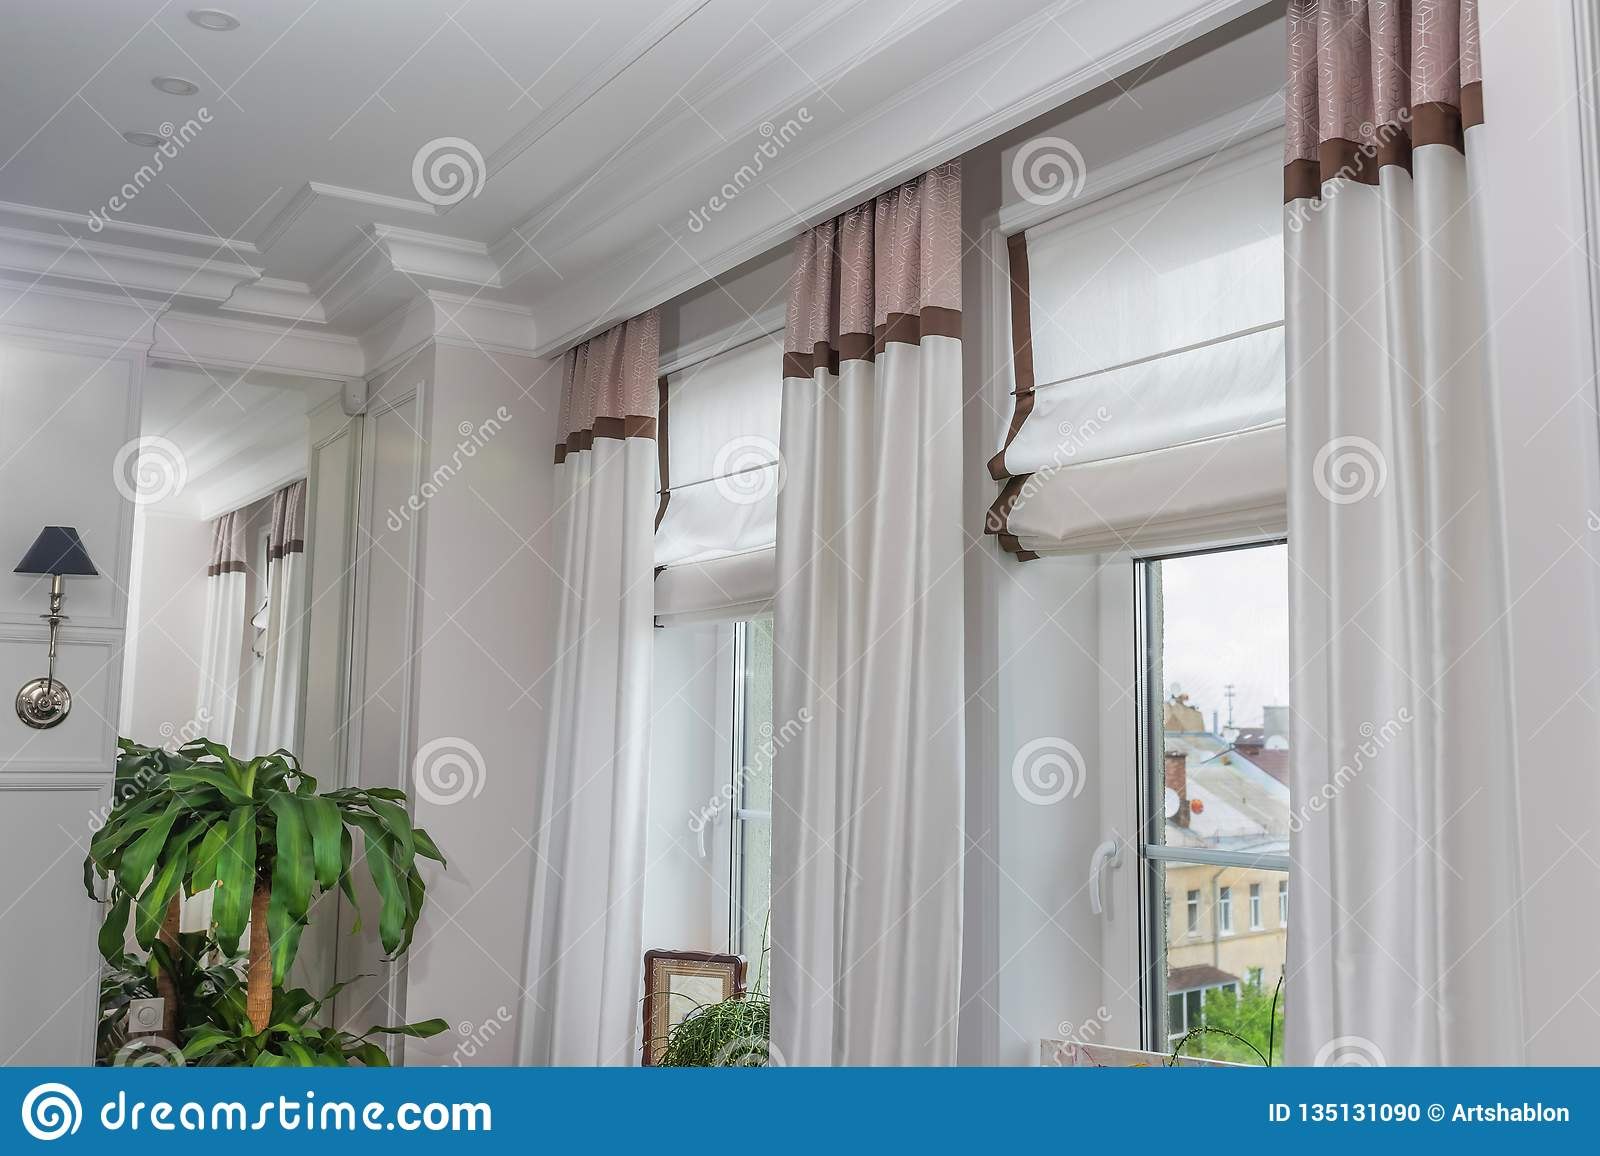 Curtains in the interior, Curtain interior decoration in living room